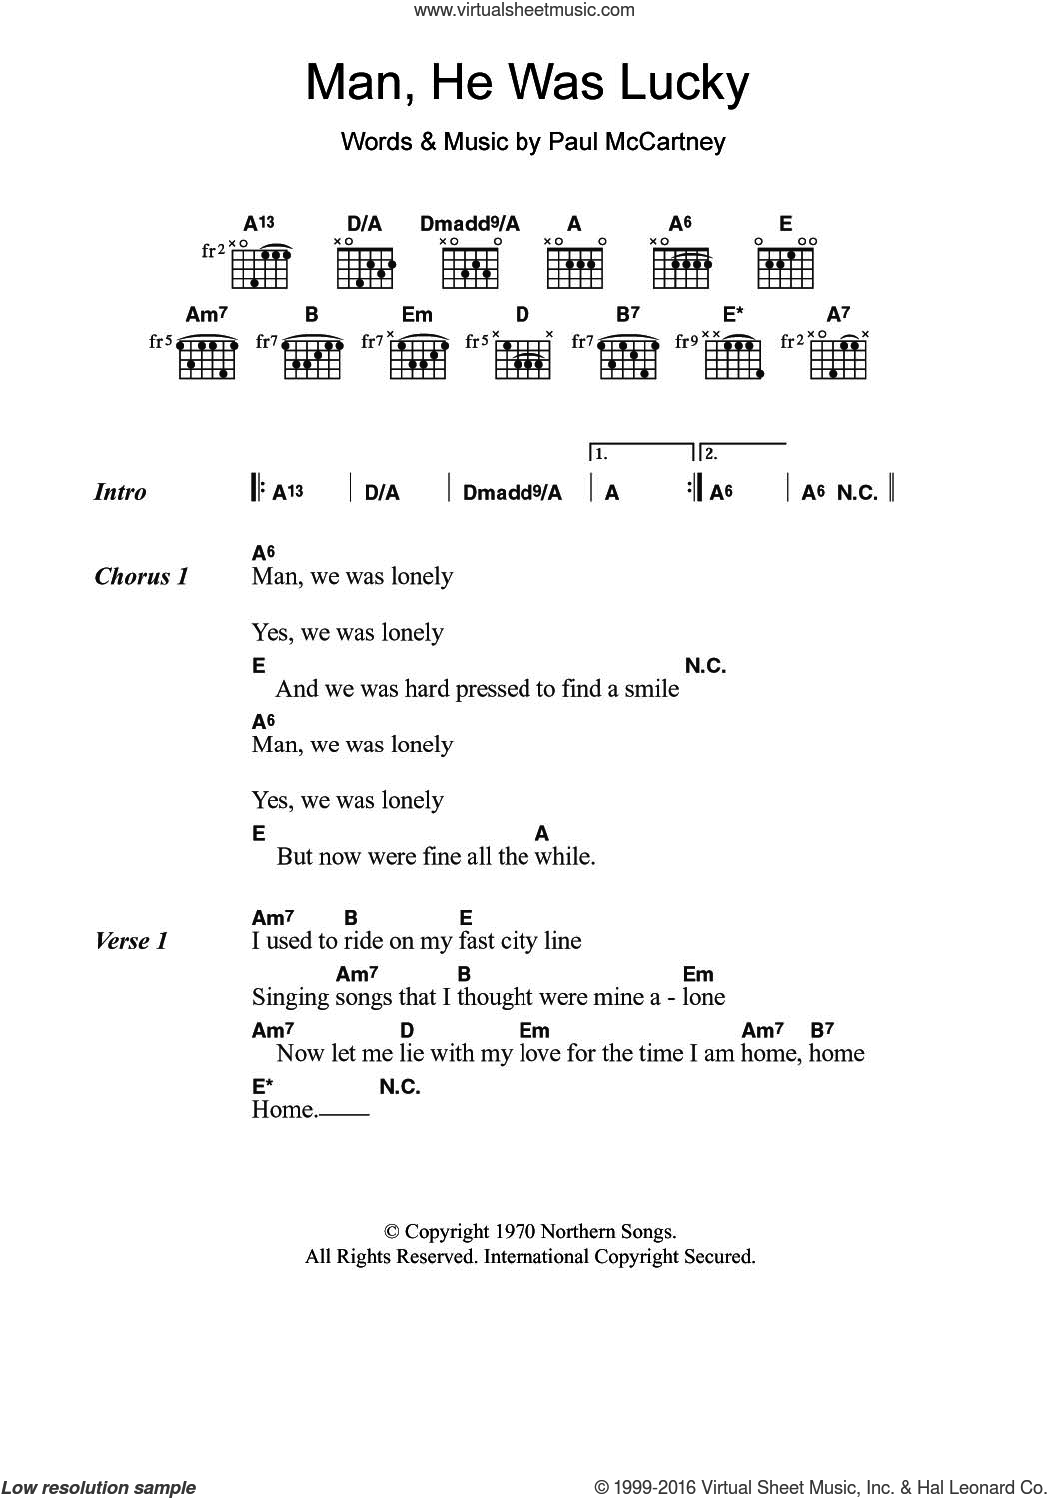 Man He Was Lucky sheet music for guitar (chords) by Paul McCartney. Score Image Preview.